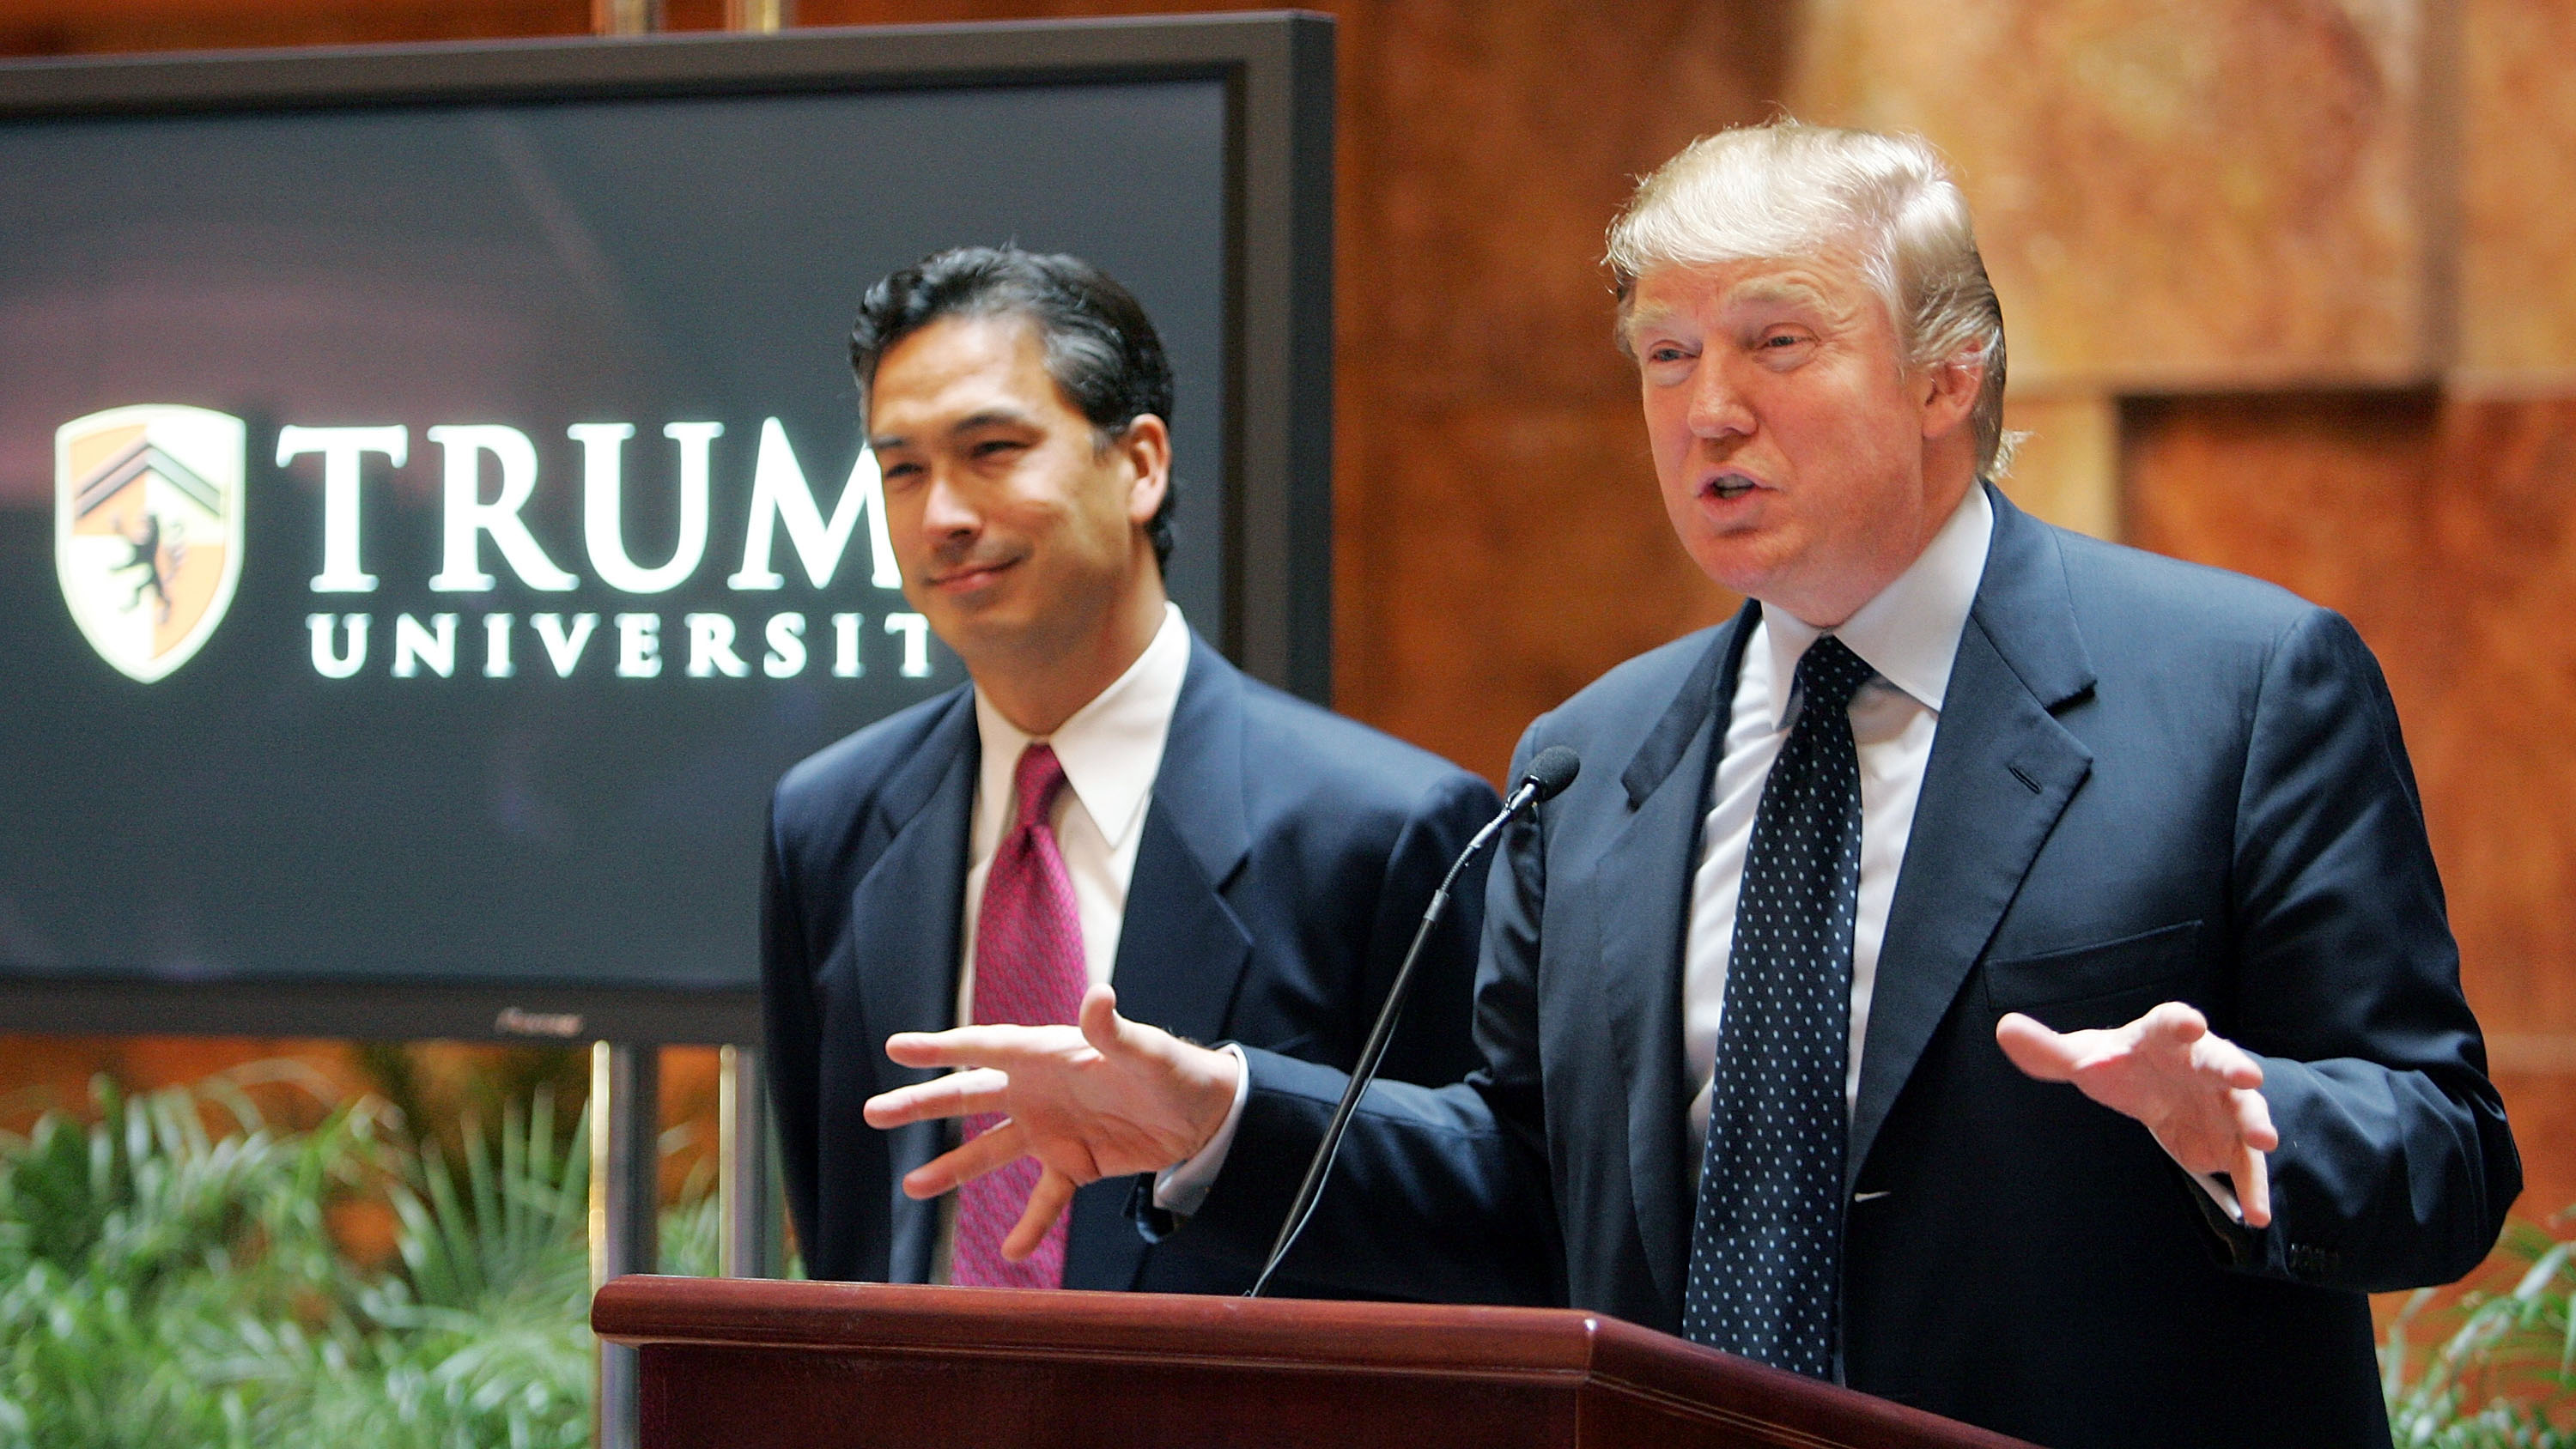 Donald Trump (R) speaks as university president Michael Sexton (L) looks on during a news conference announcing the establishment of Trump University May 23, 2005 in New York City.